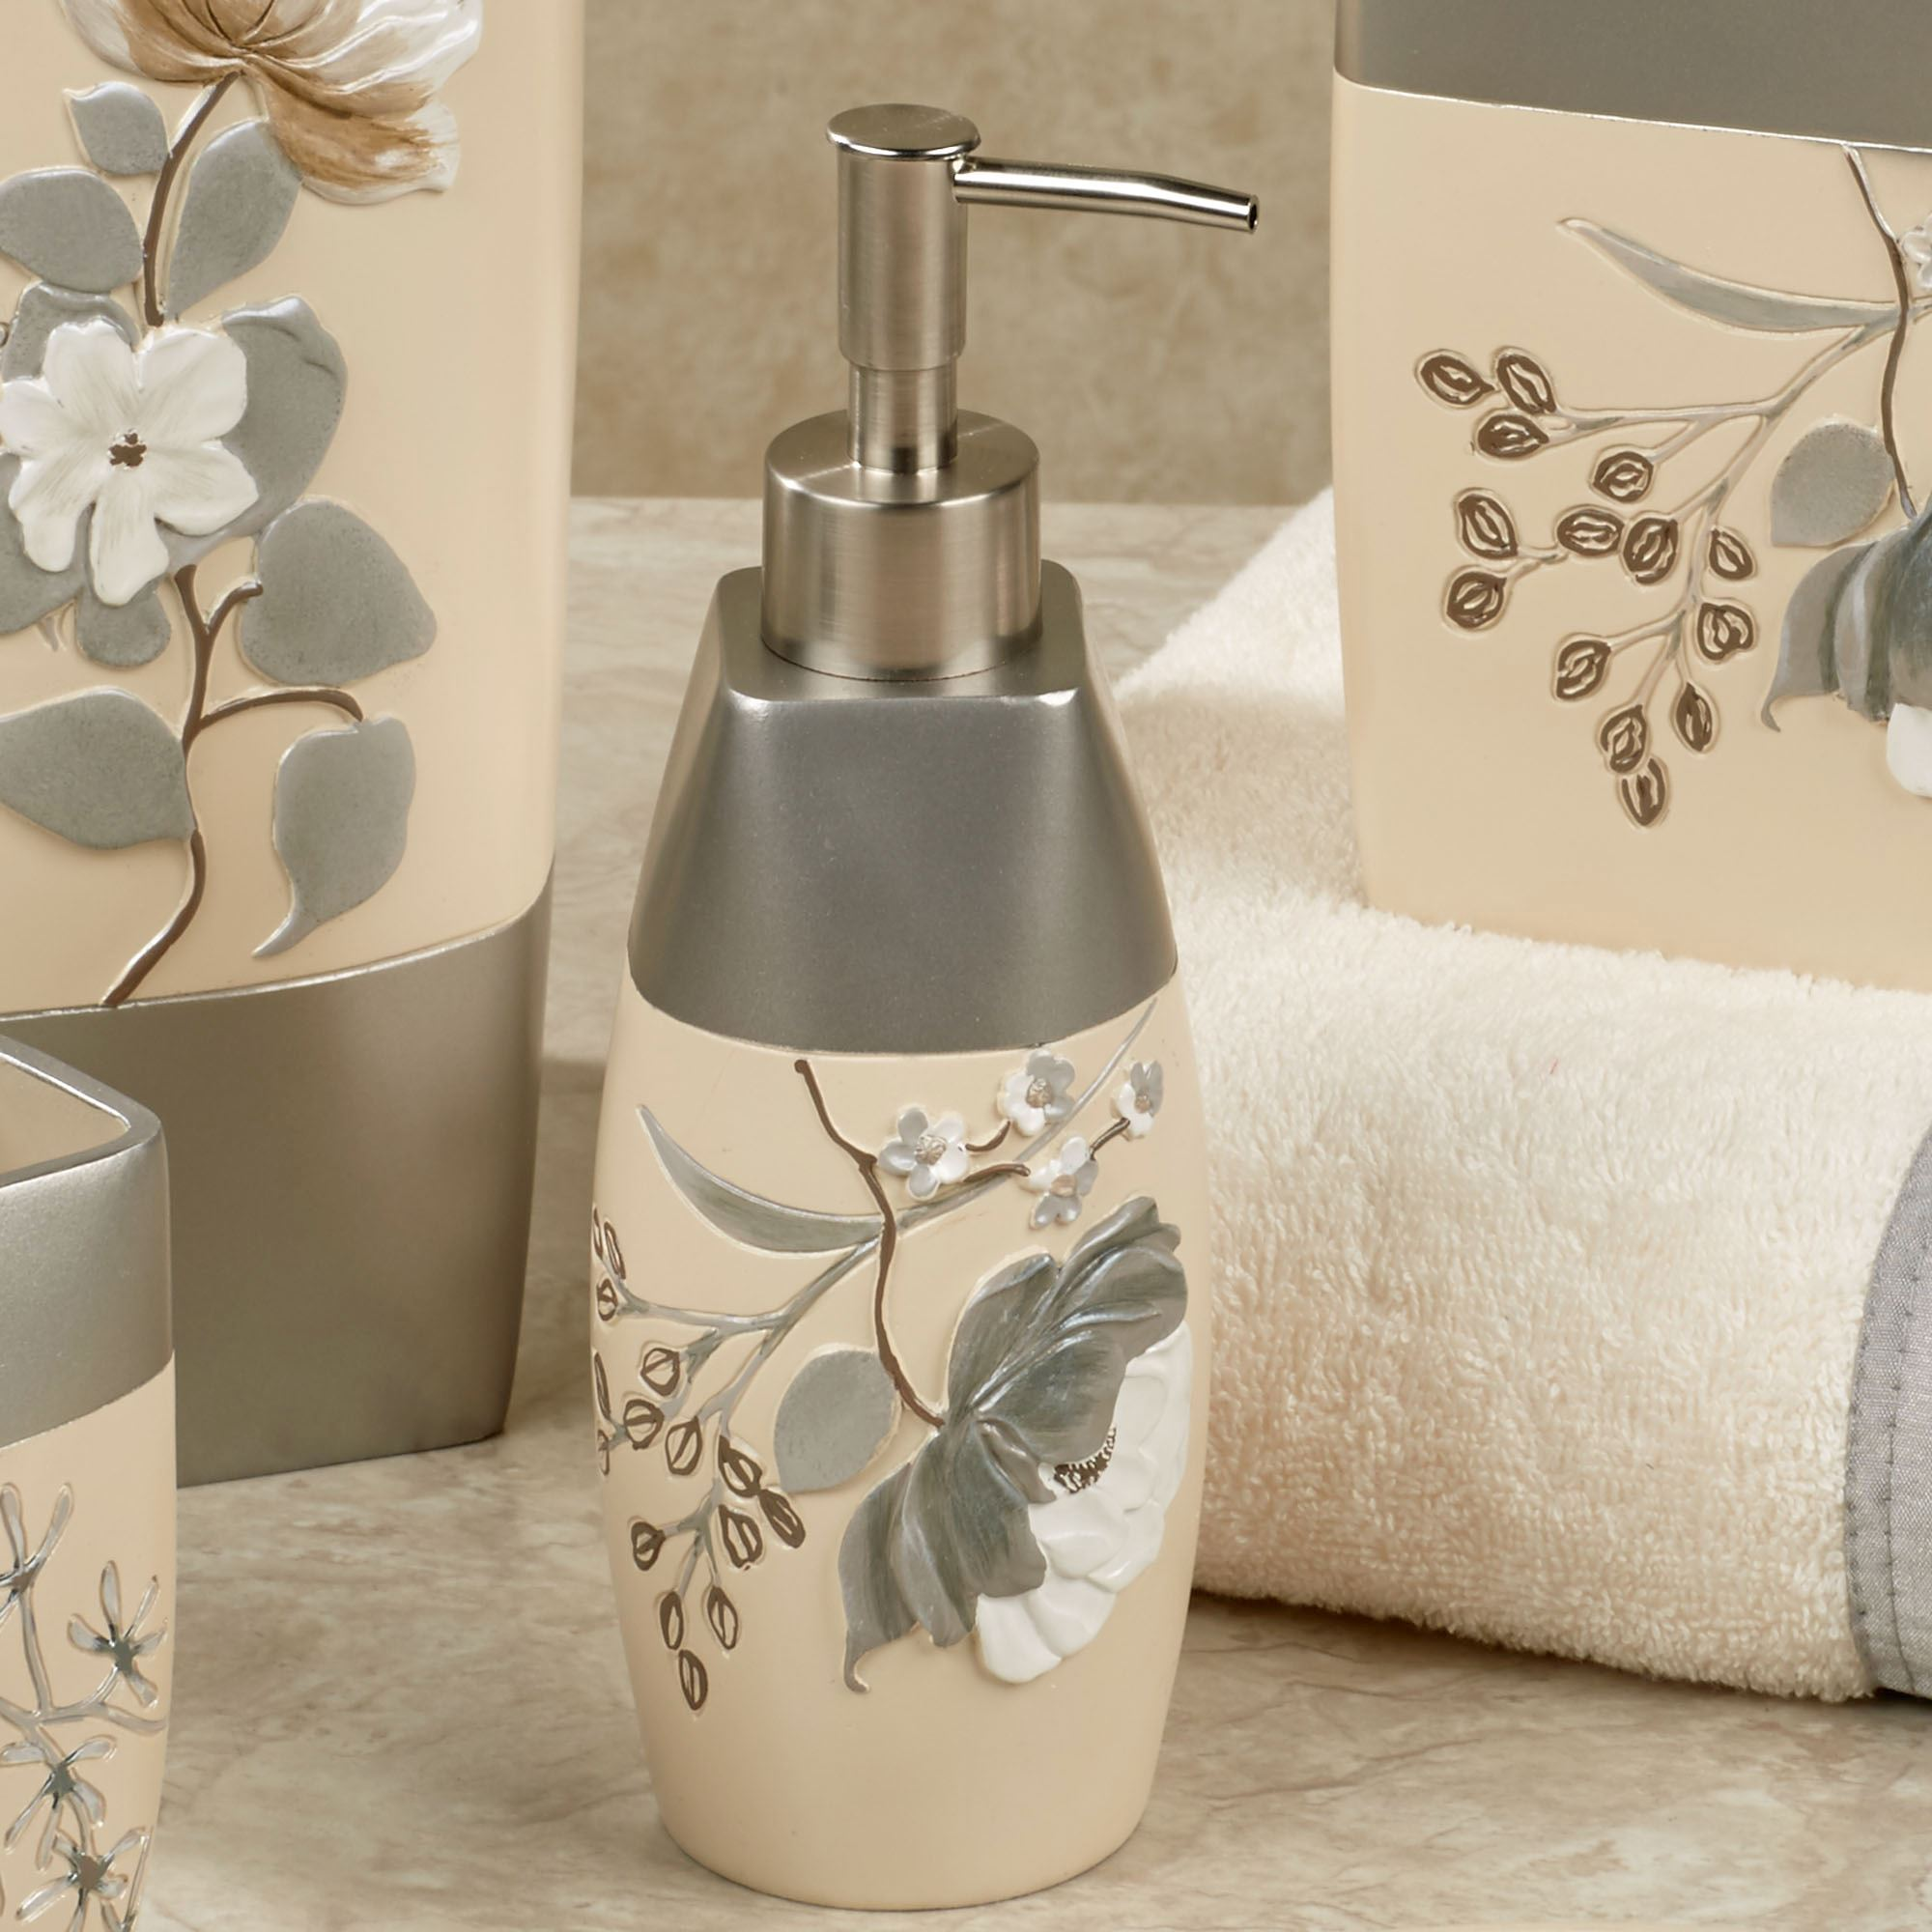 Country Christmas Bathroom Sets: Ashley Floral Bath Accessories